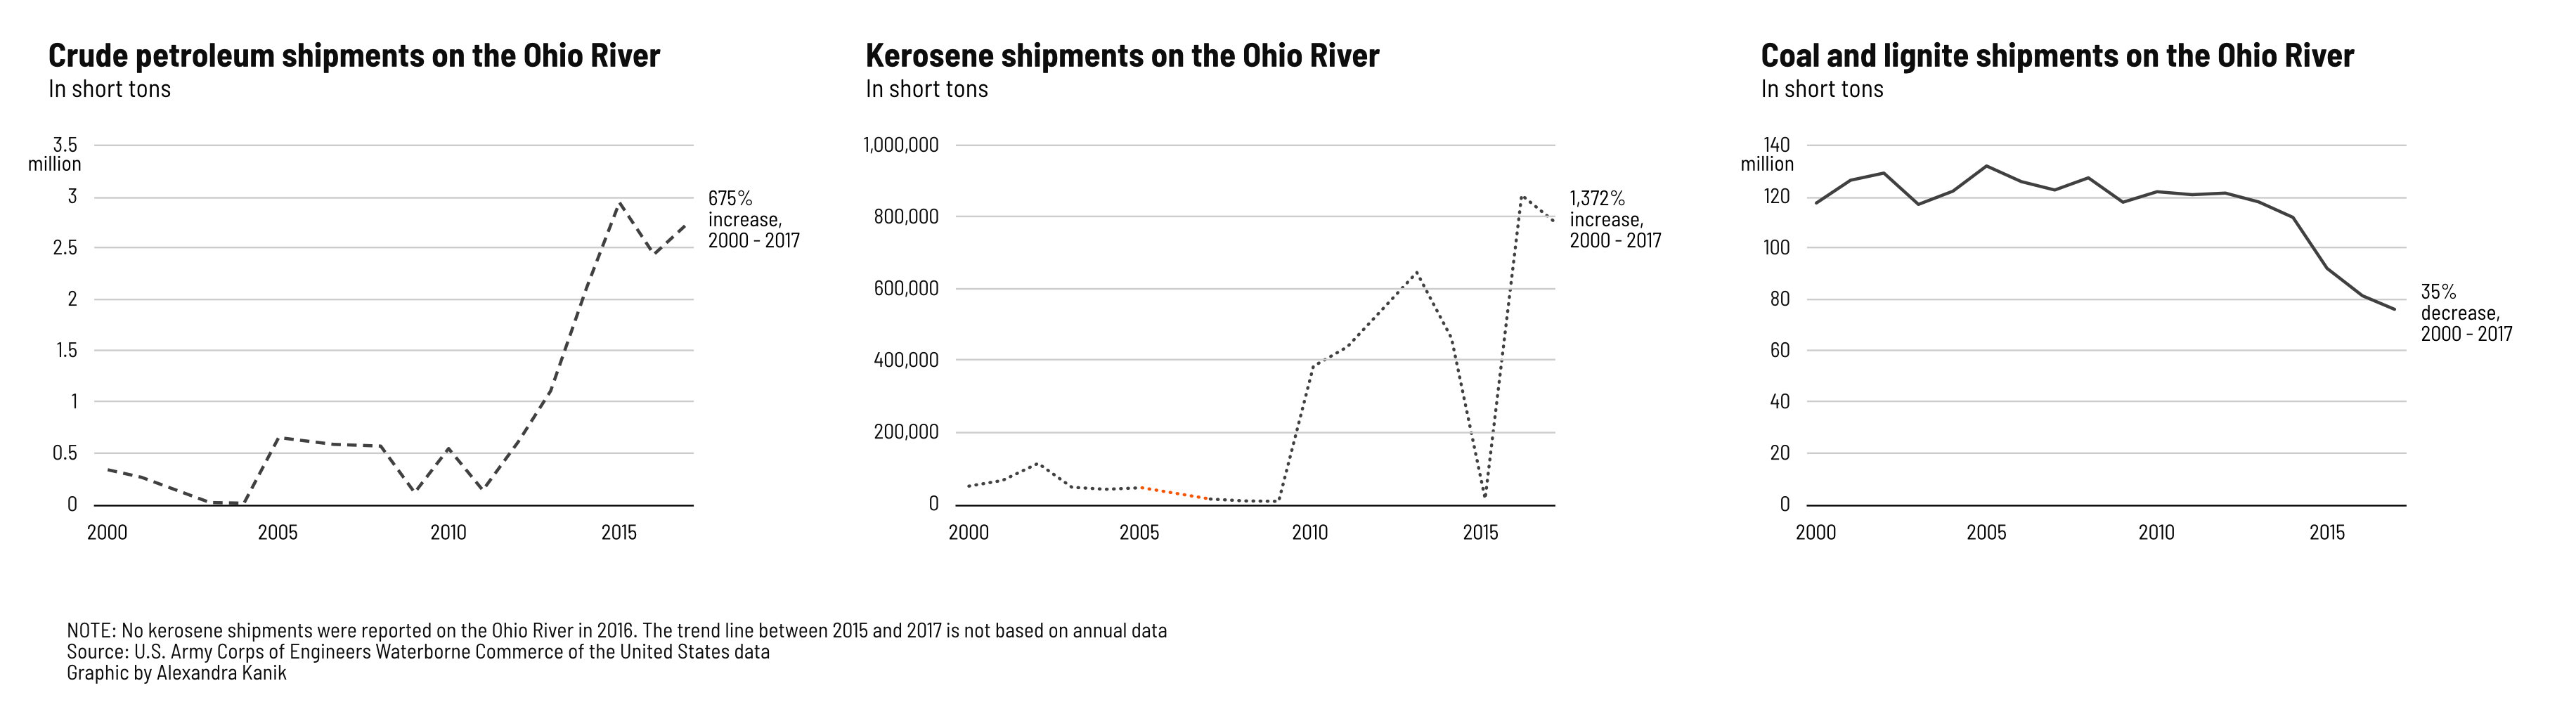 Shipping data for kerosene, crude oil and coal overtime